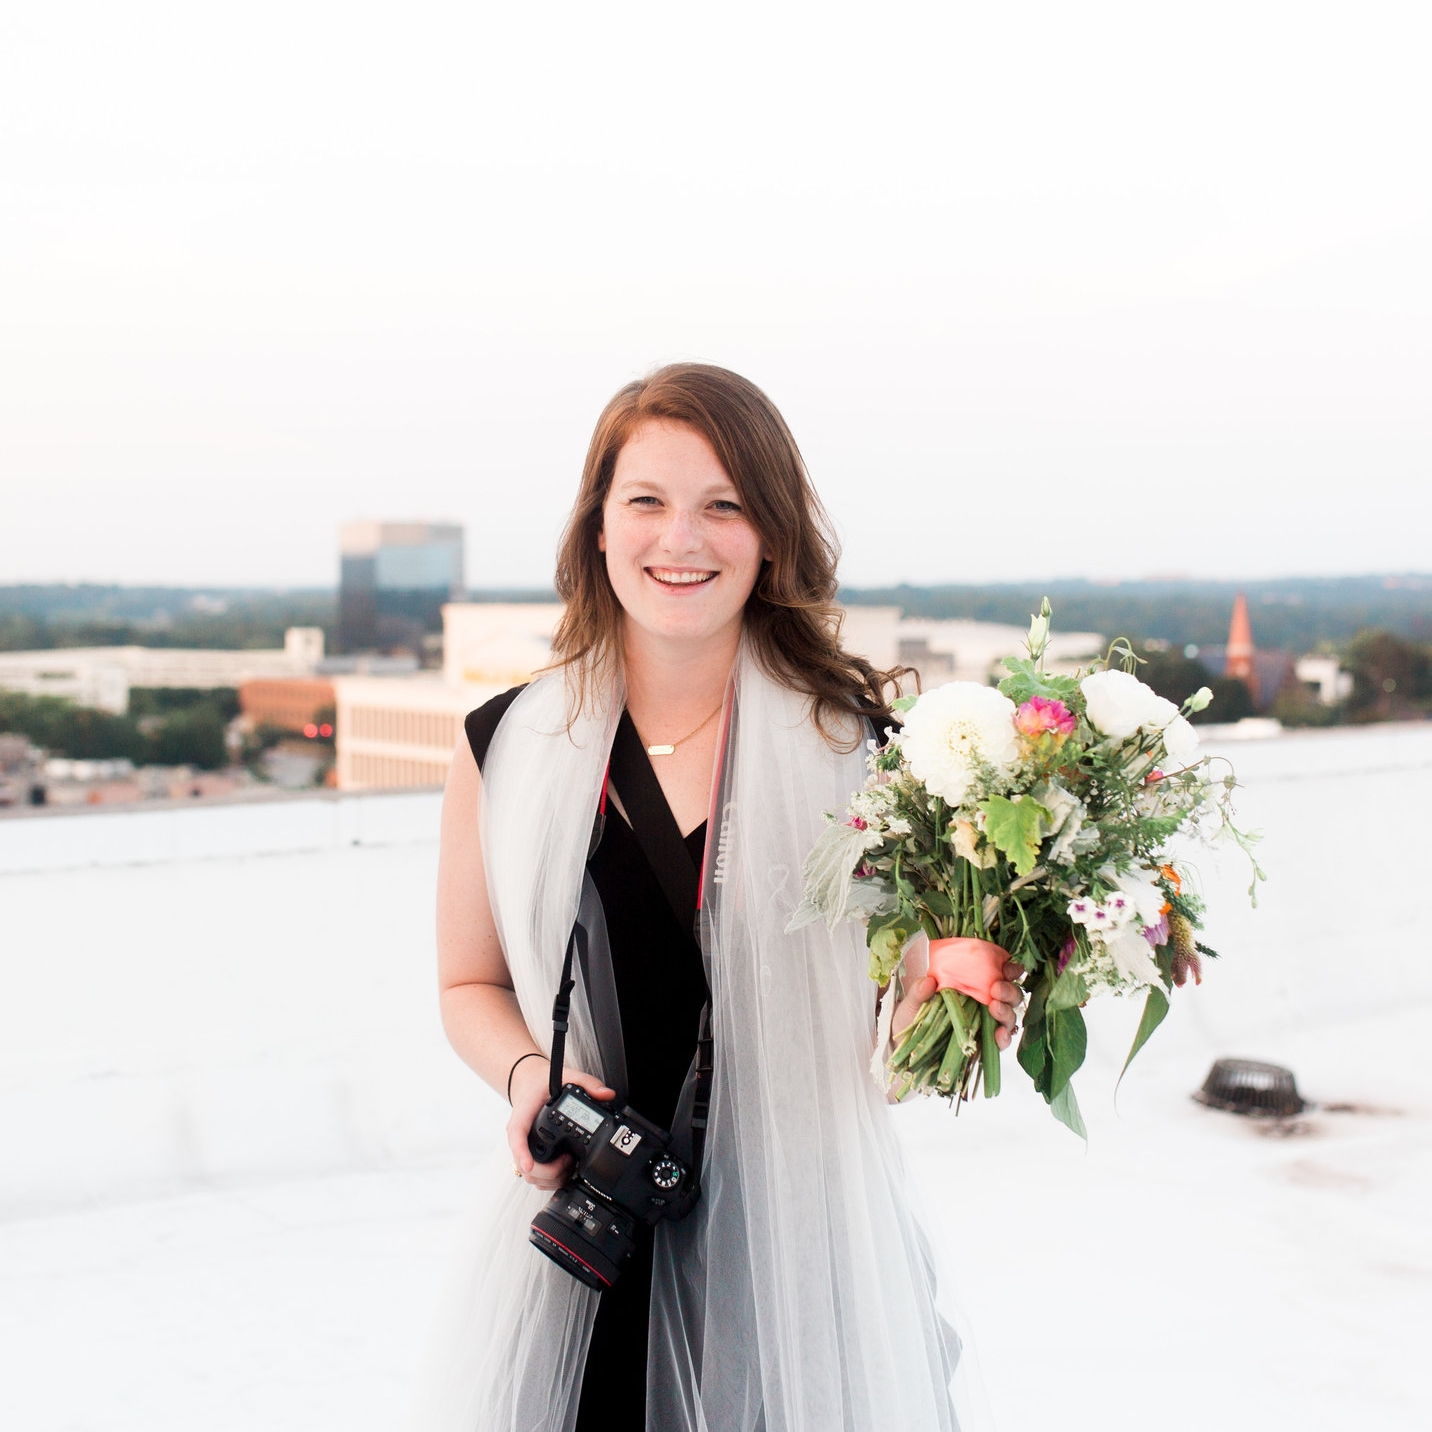 Thanks for stopping by! Hopefully this blog will give you a glimpse into what a wedding, shoot and everyday life with me looks like!